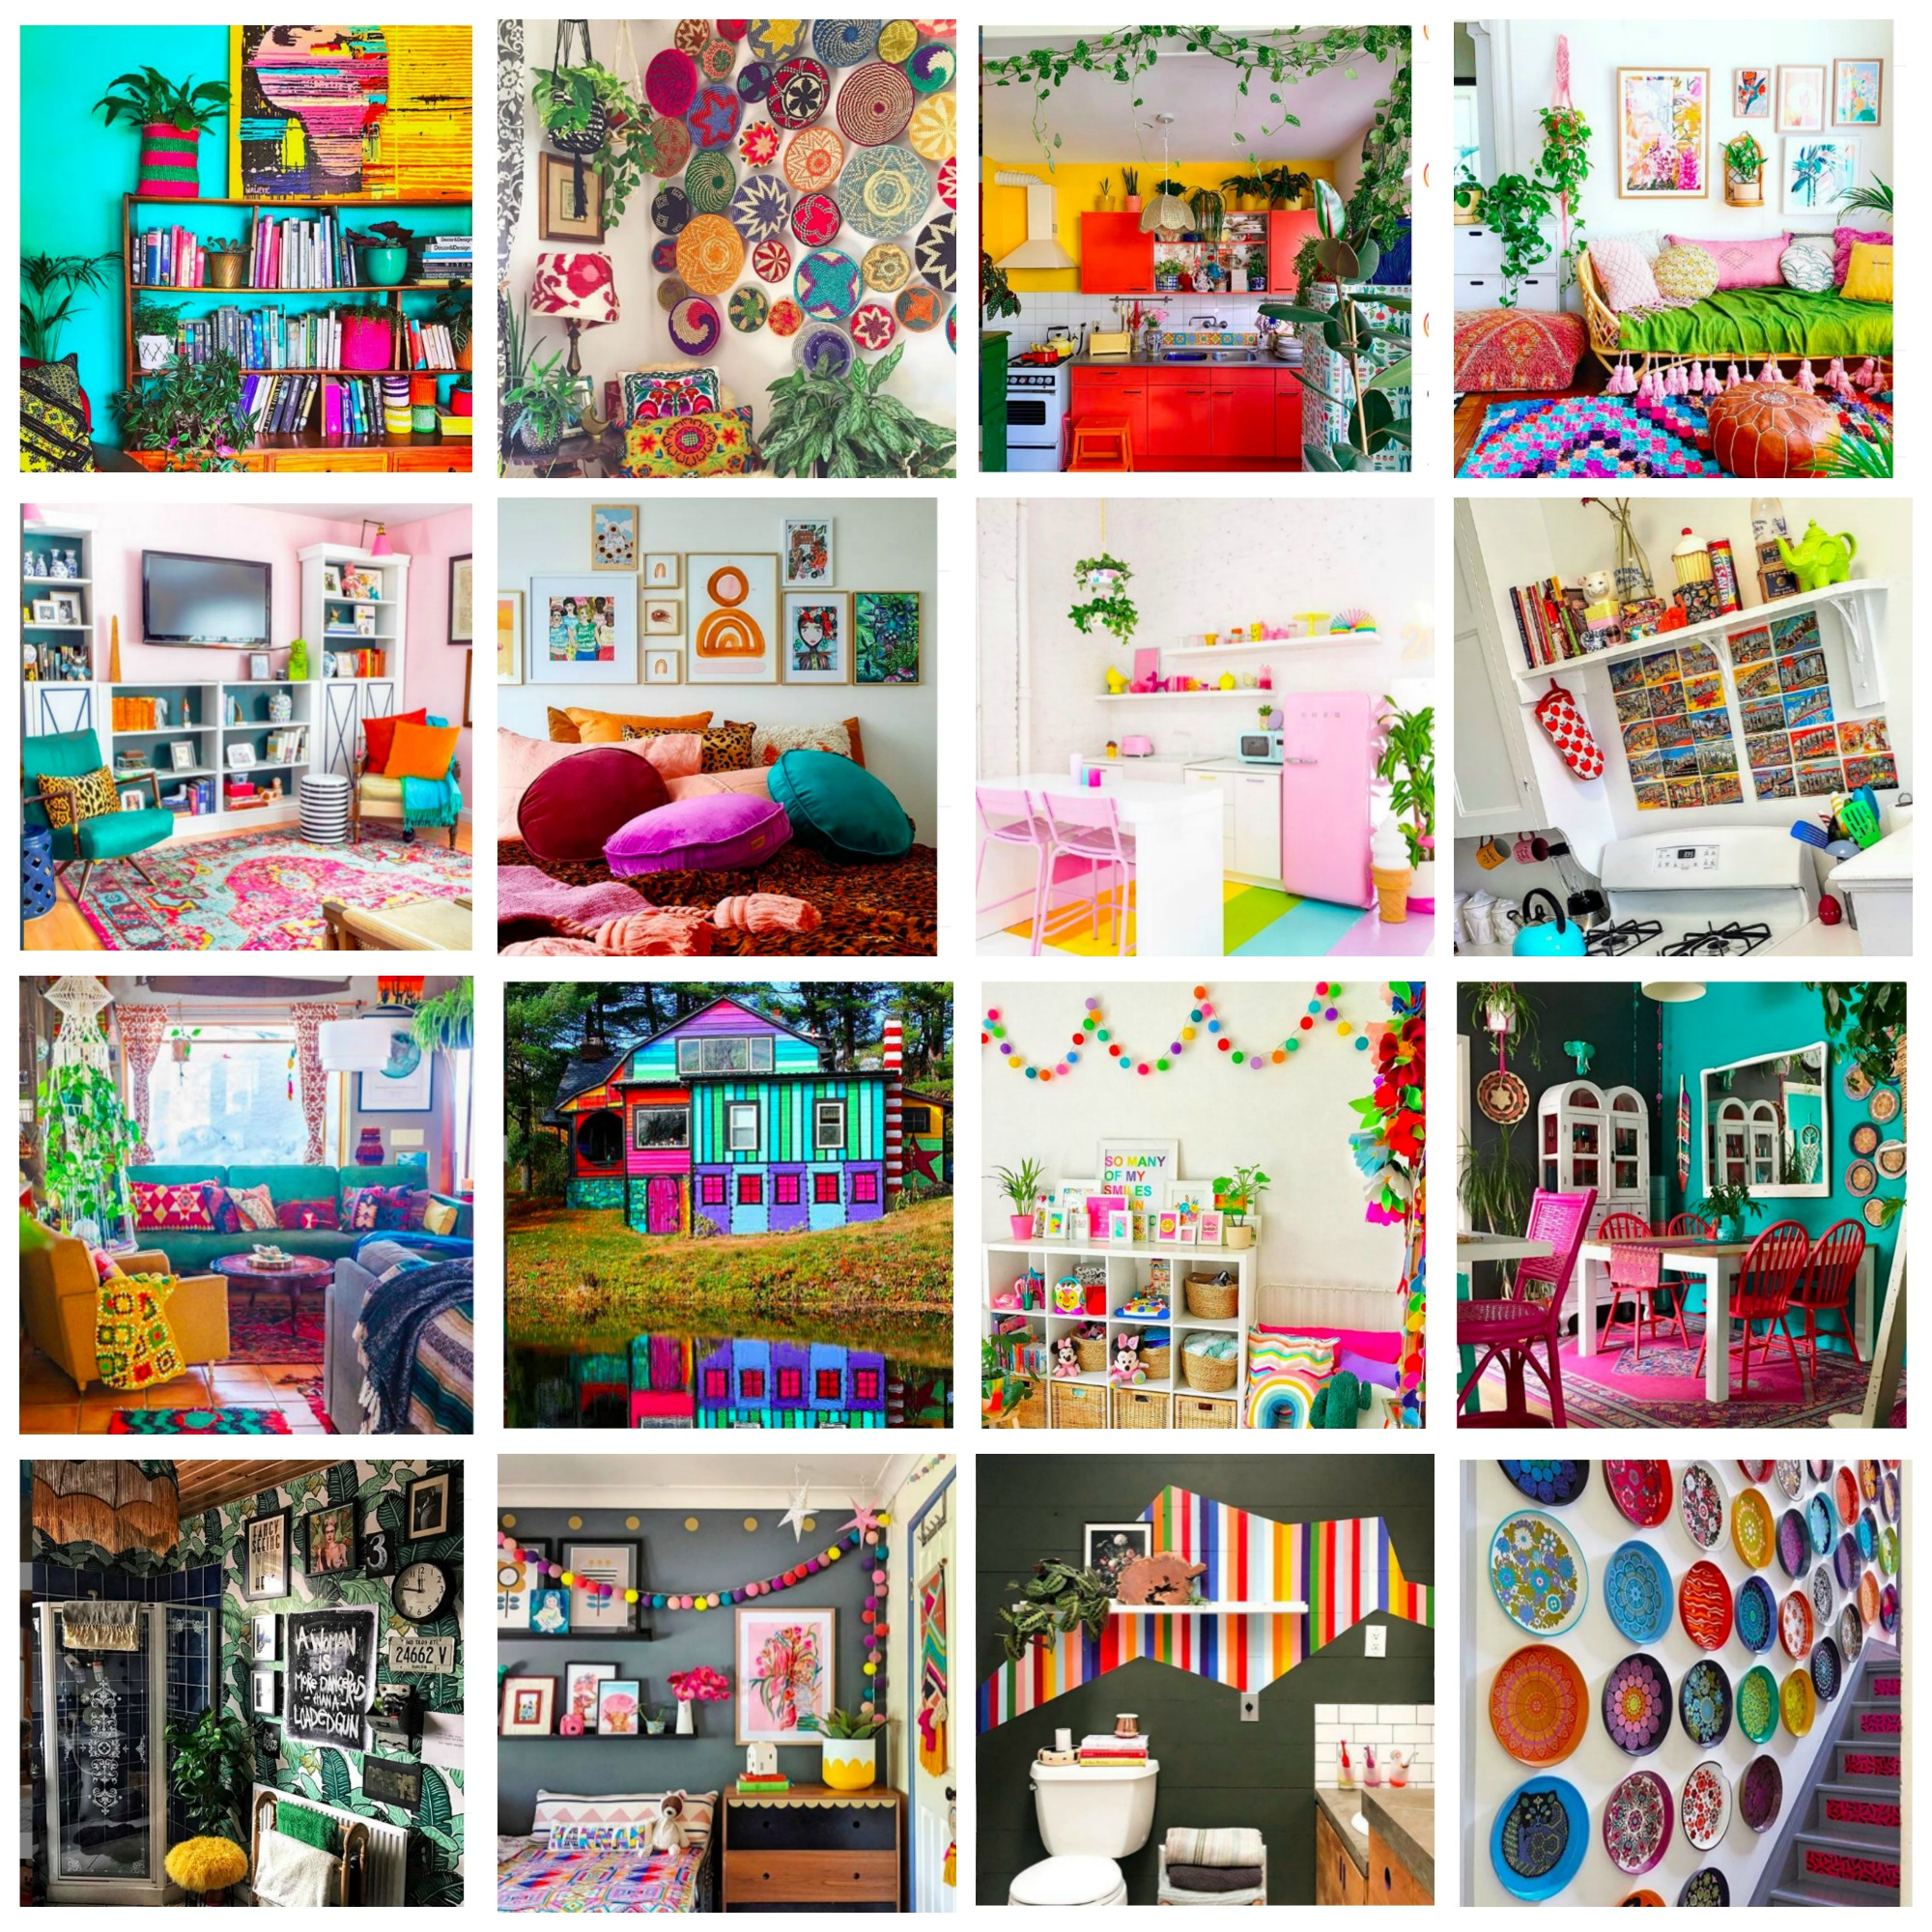 Top 20 Most Colorful, Bold and Eclectic Home Decor Instagram Accounts You Should Be Following For Daily Inspiration